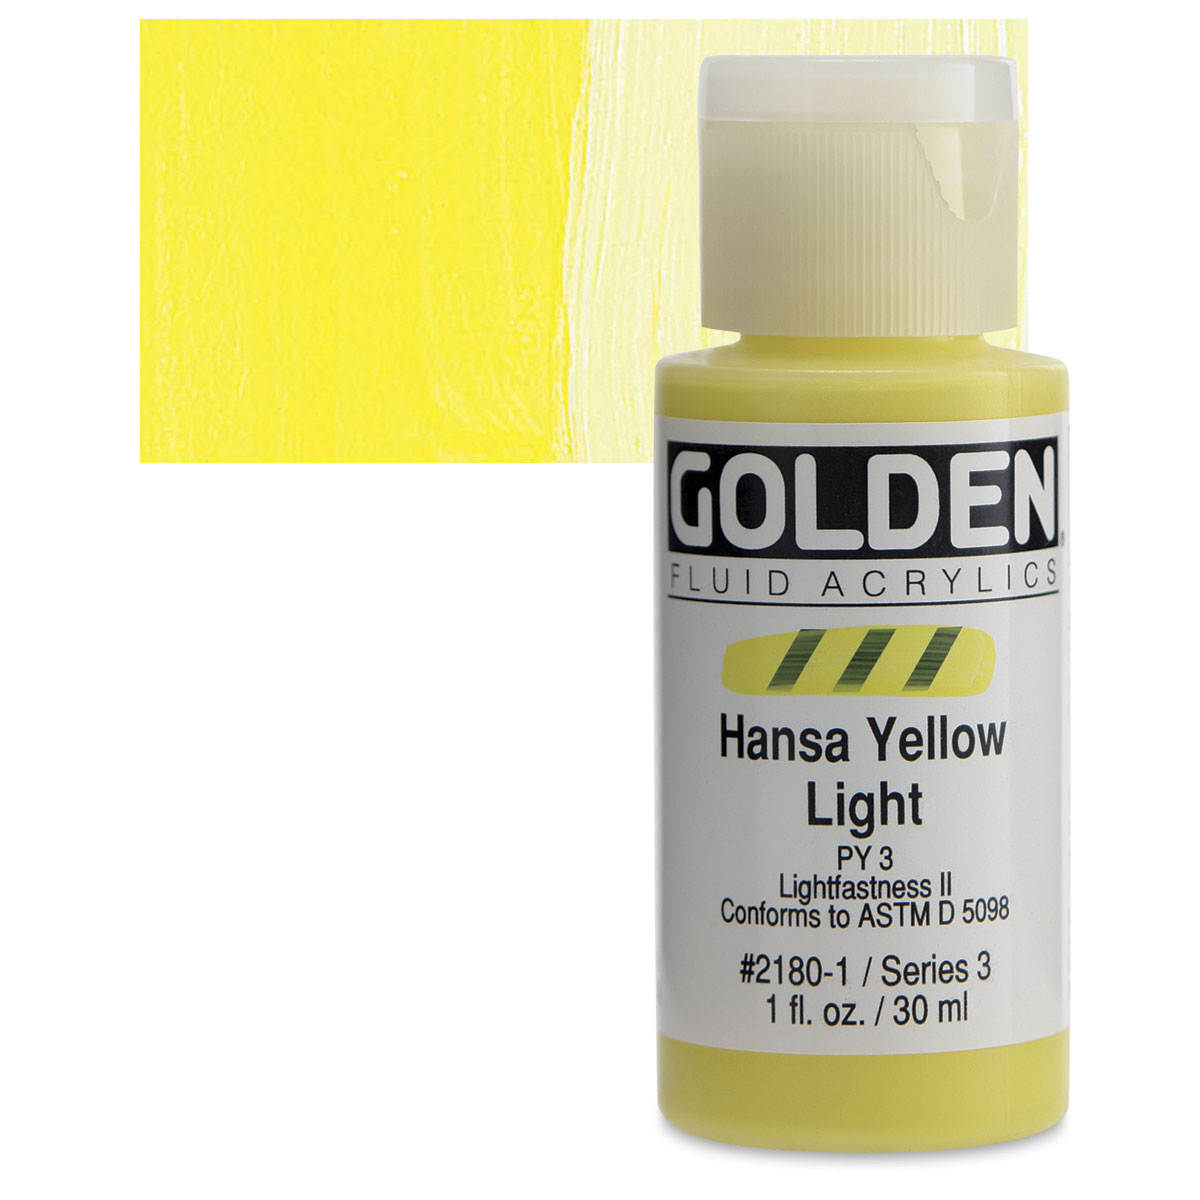 006384701 golden fluid acrylics blick art materials